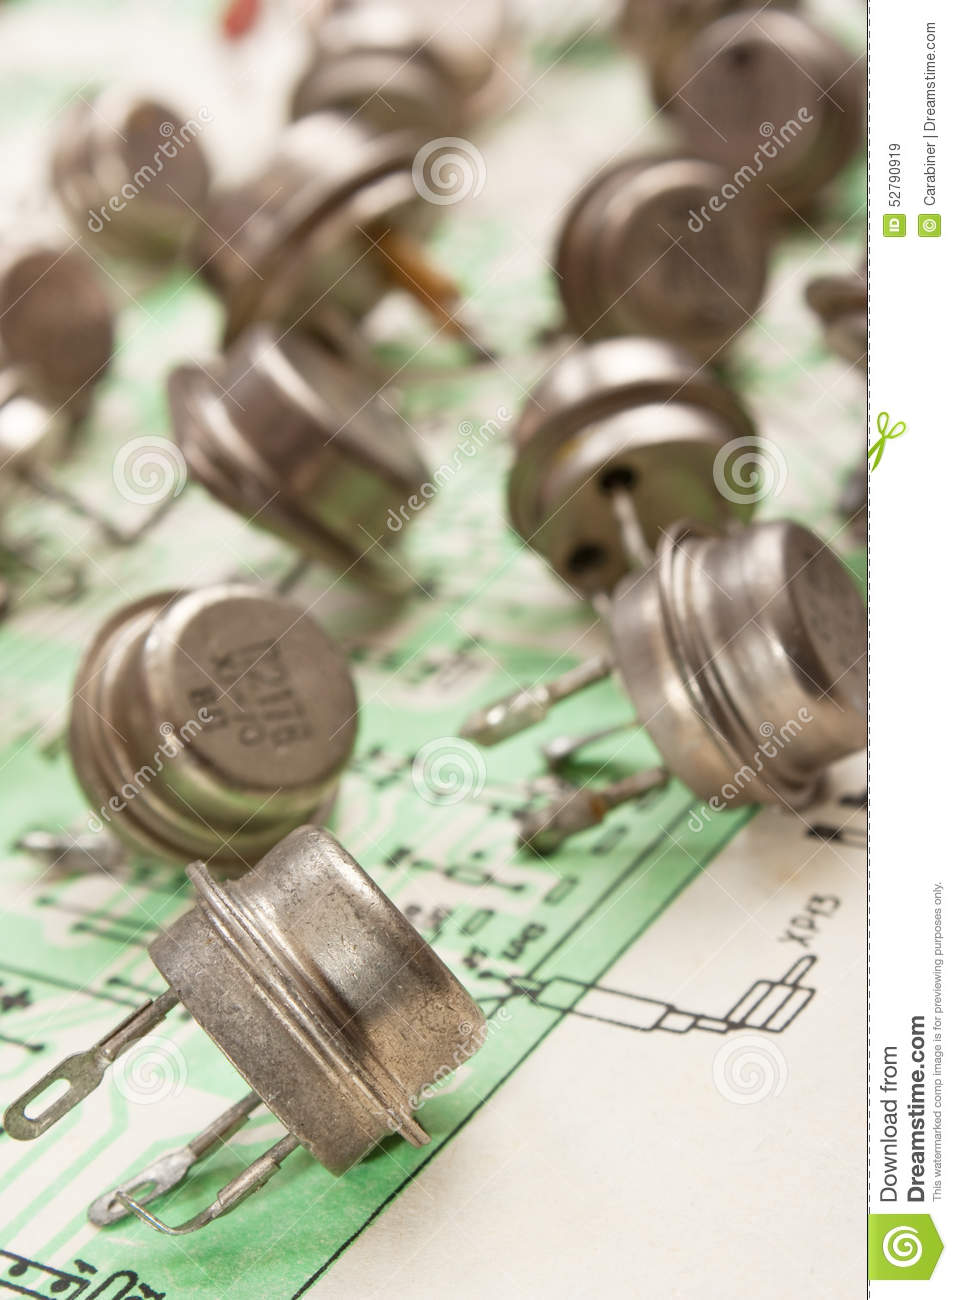 Old Electronic Components Stock Image Of Office 52790919 Wiring Diagram Lie On The